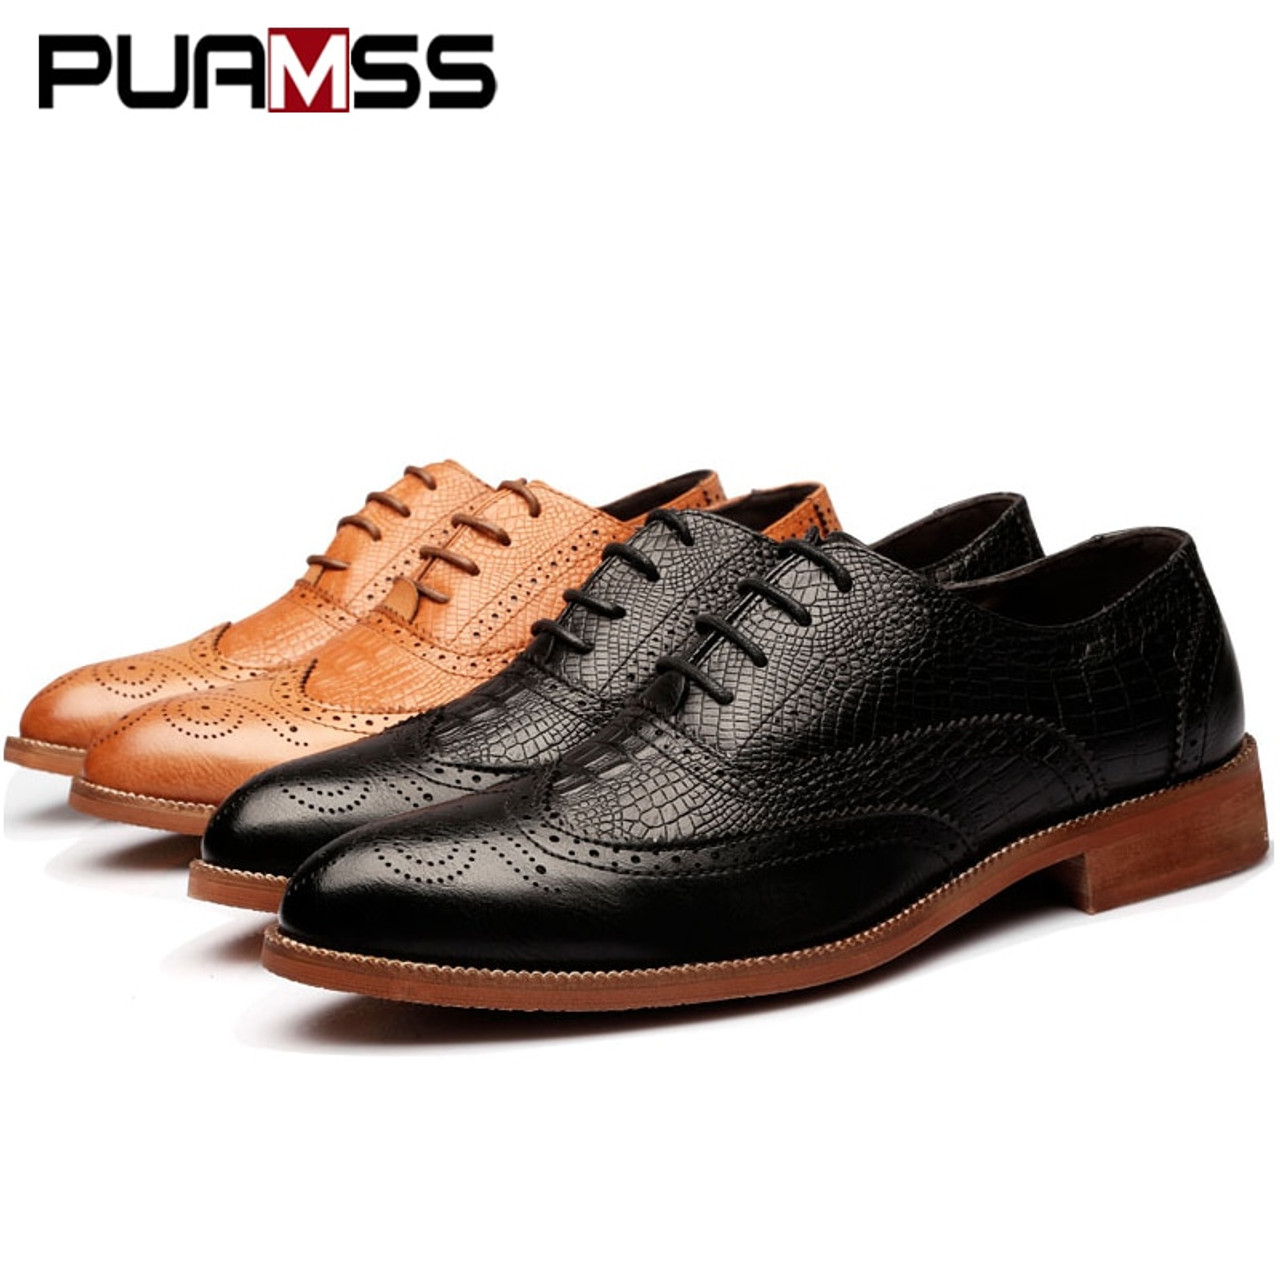 ... 2018 New Men Dress Shoes Handmade British Brogue Style Paty Leather  Wedding Shoes Men Flats Leather 1d07bd319735